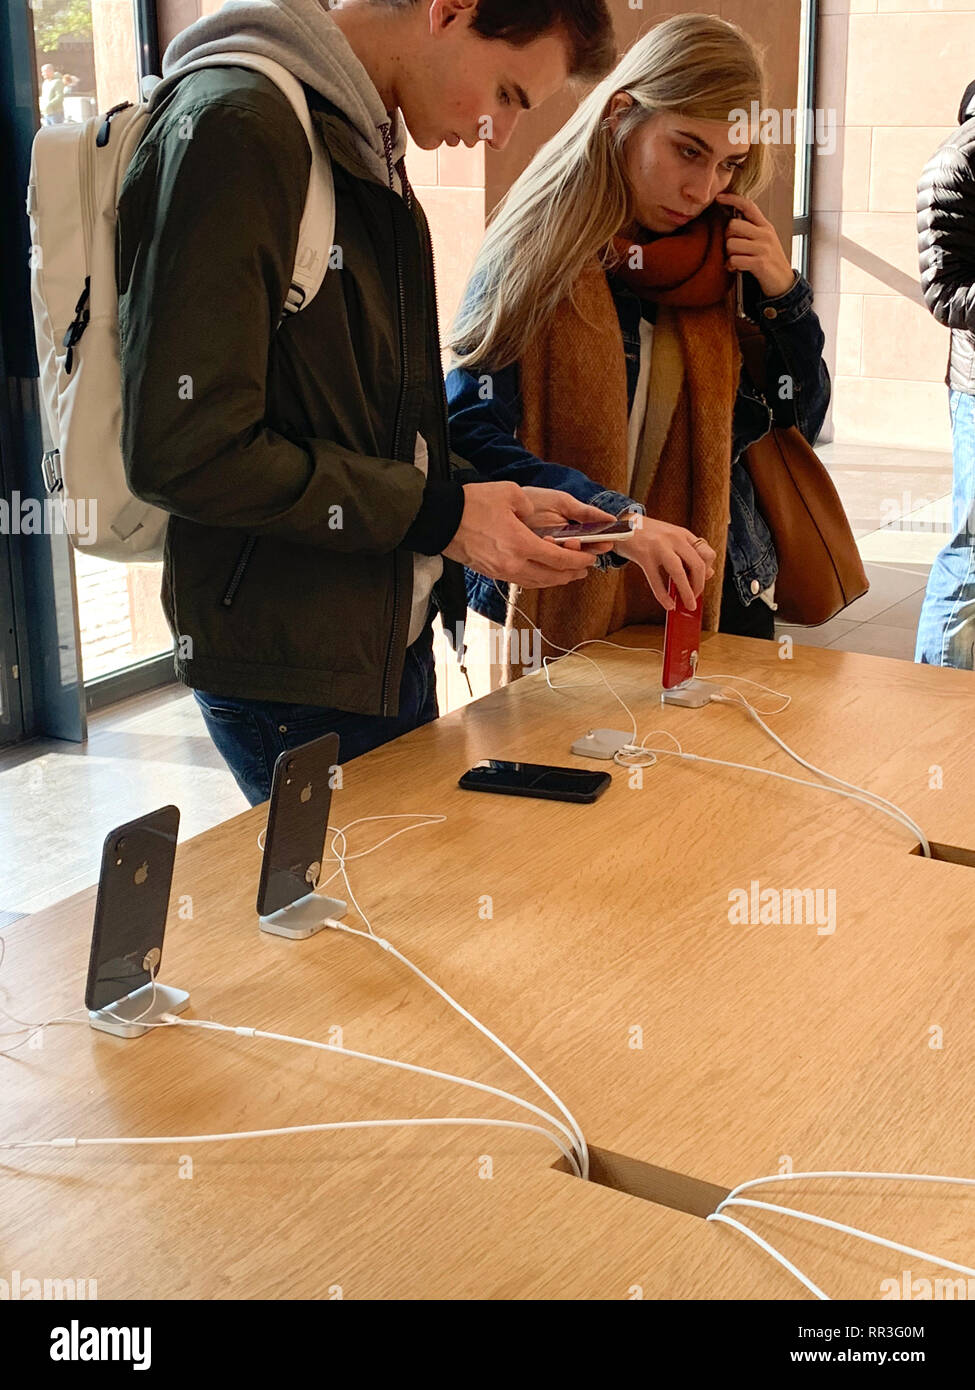 PARIS, FRANCE - OCT 26, 2018: Side view of young couple admiring the latest iPhone XR smartphone in Apple Store Computers during the launch day - Stock Image